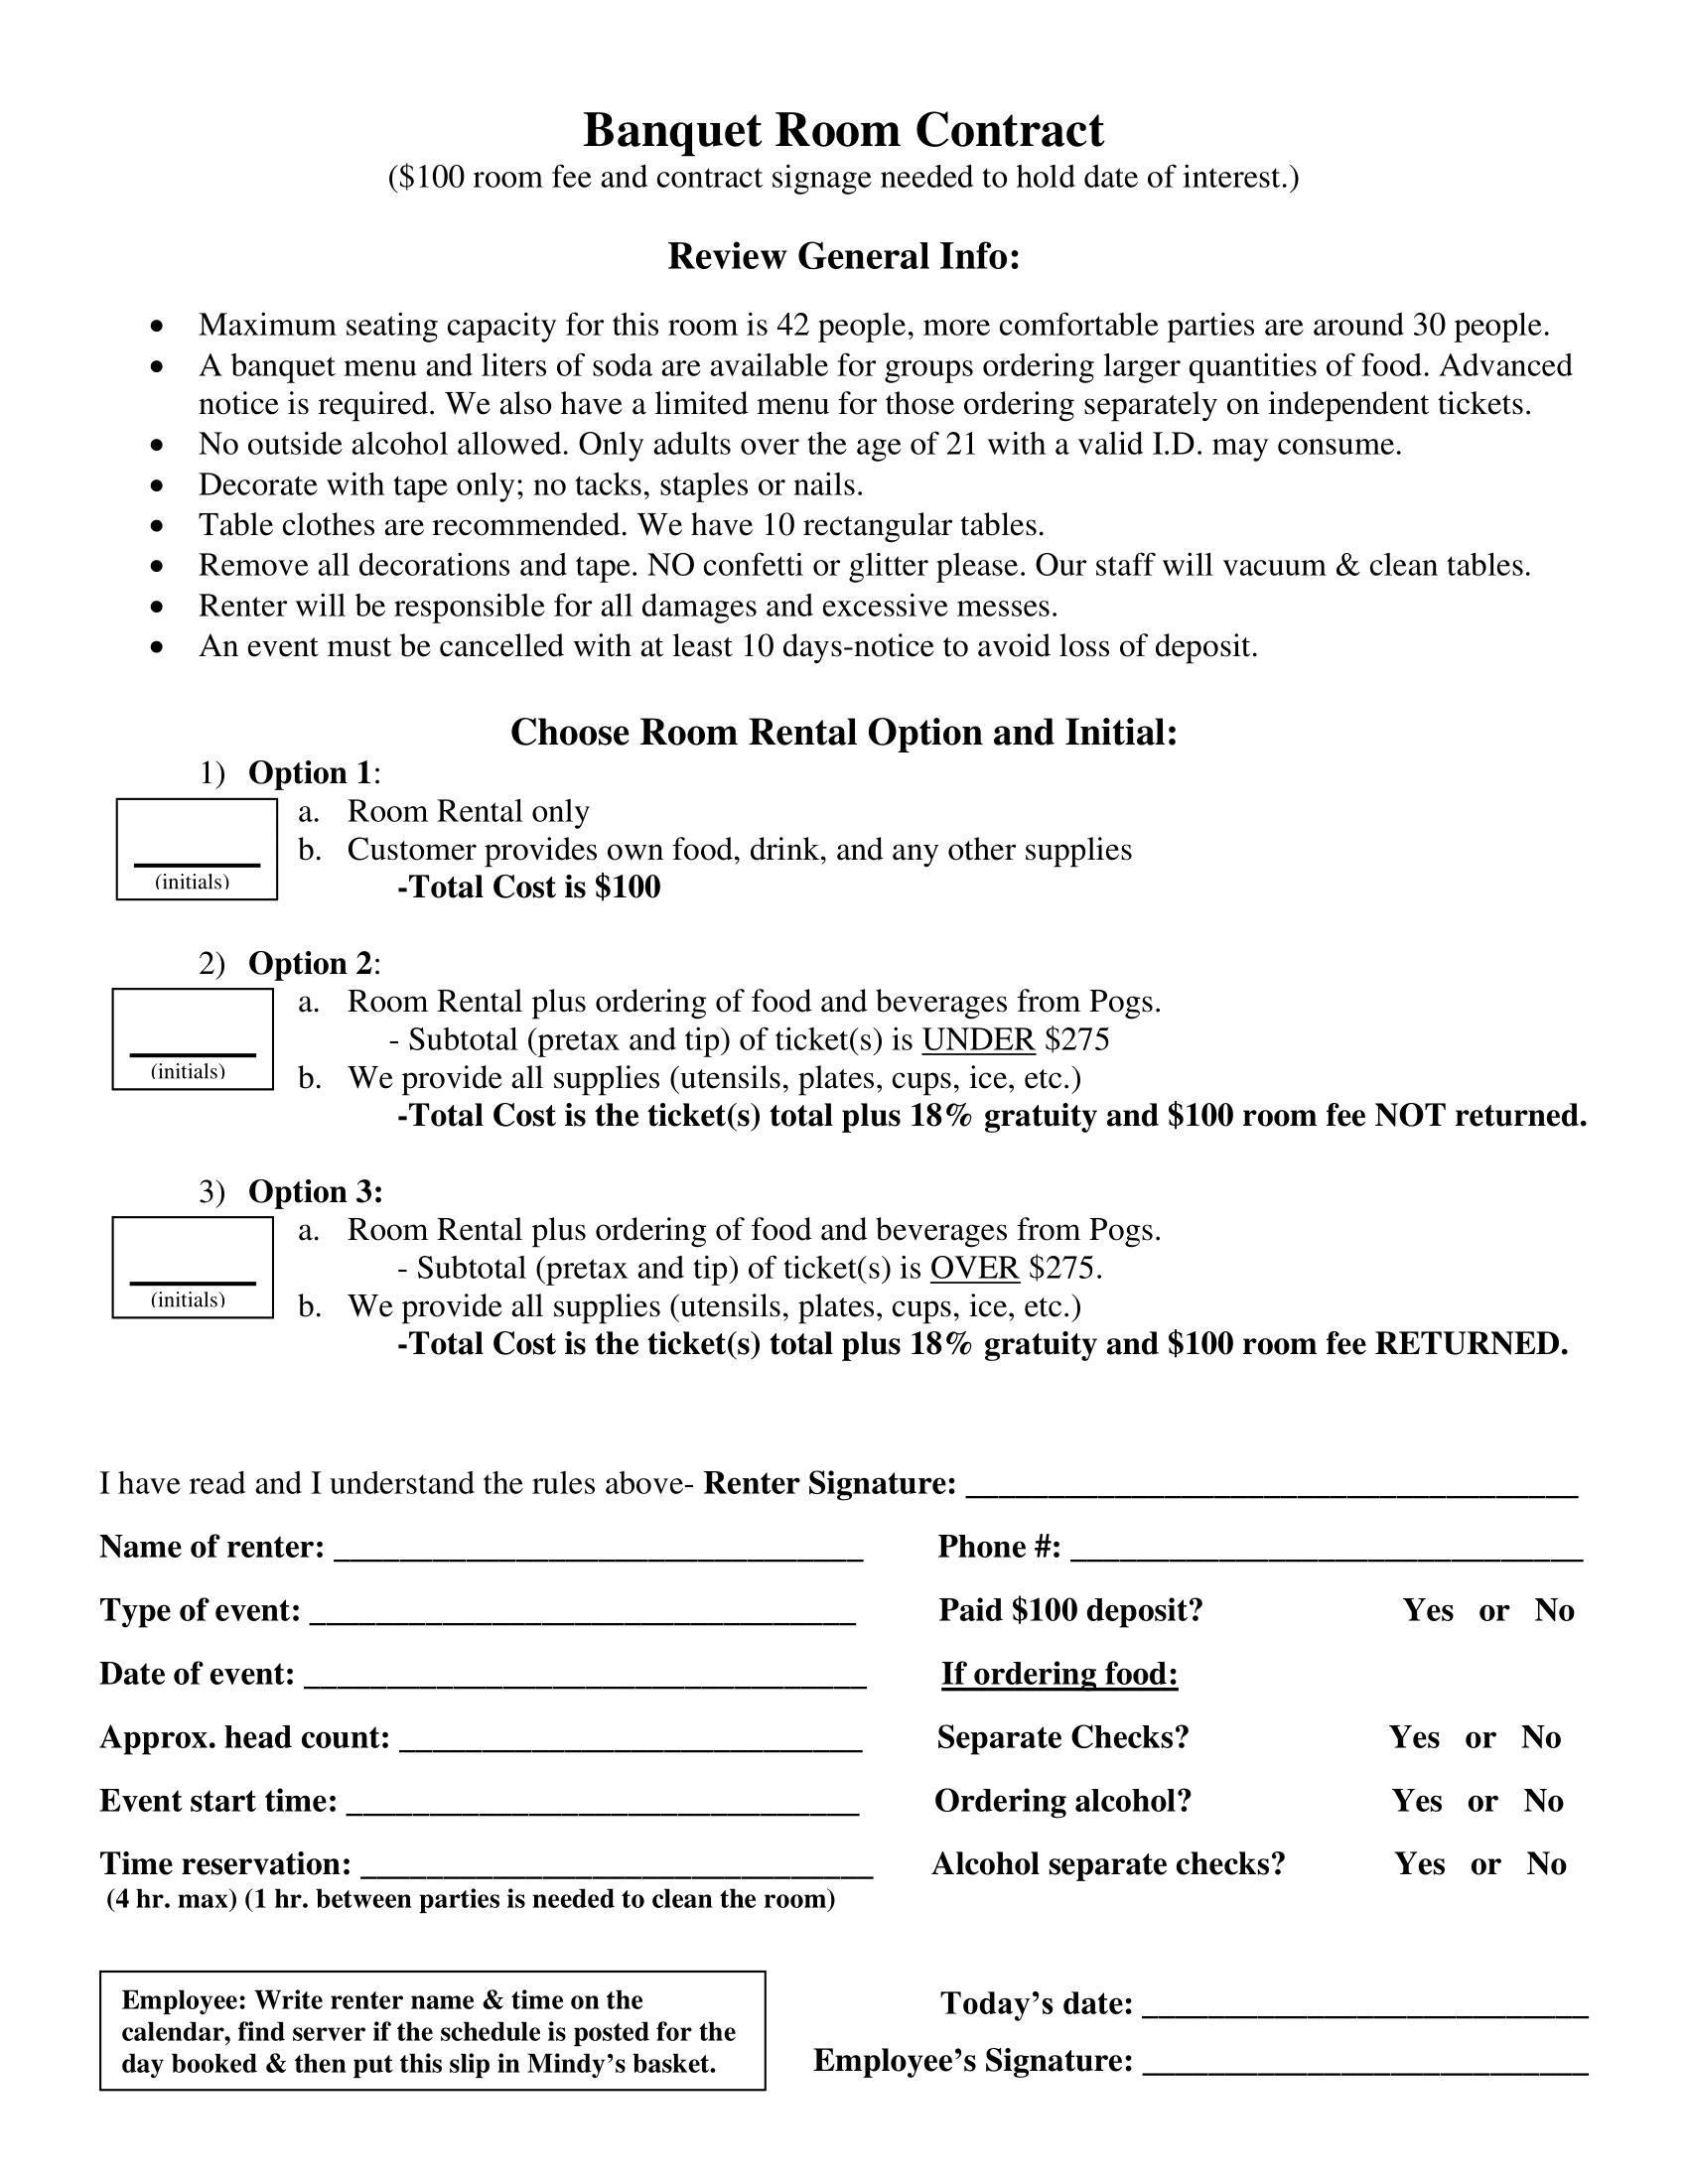 Click For Readable PDF